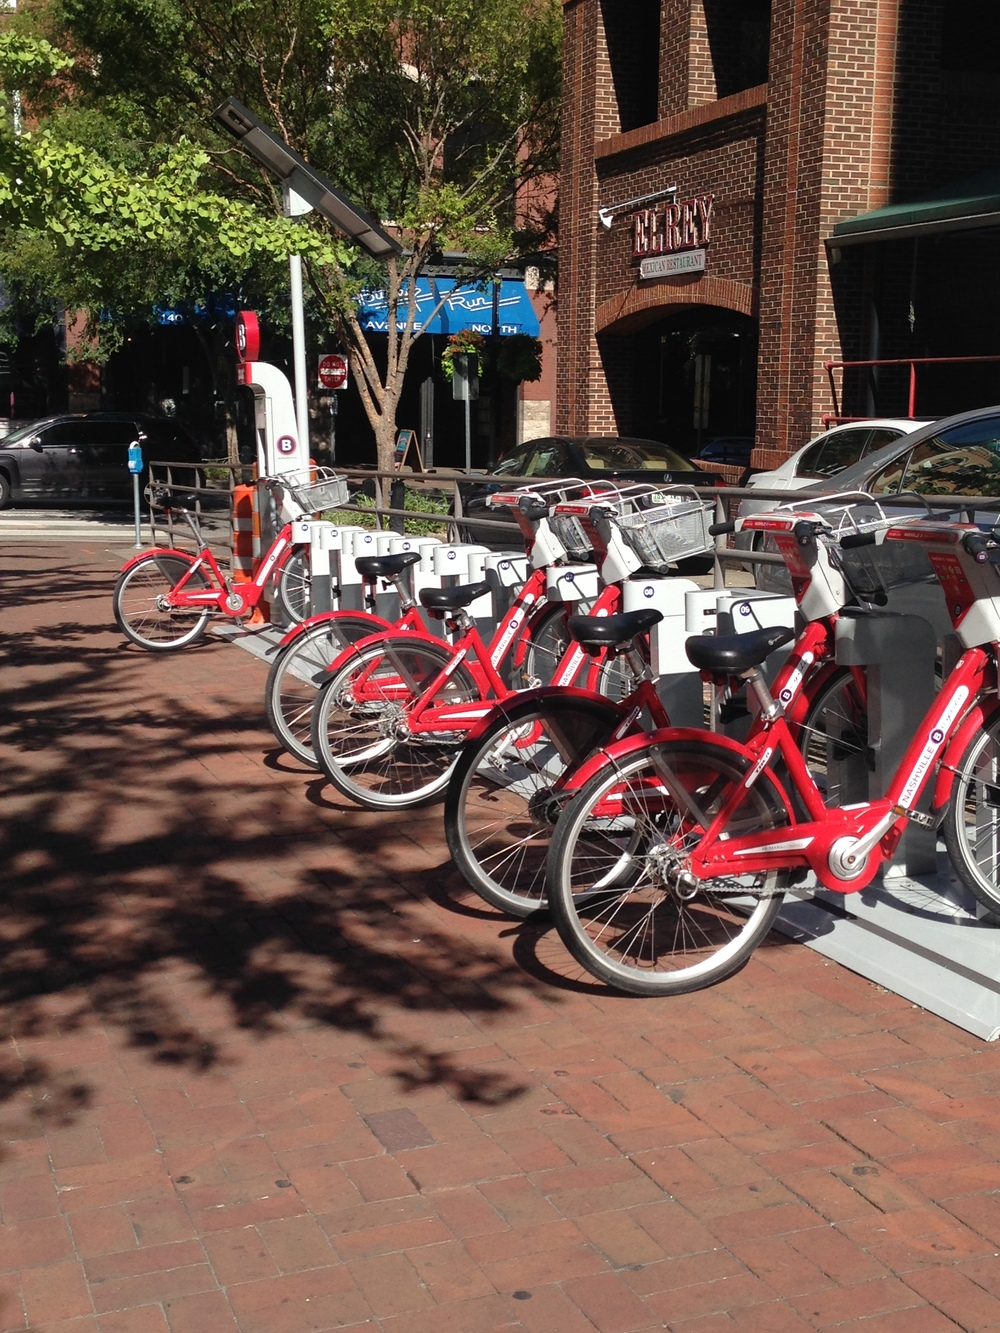 Nashville's bike share is one way the city is working to provide more transportation options.